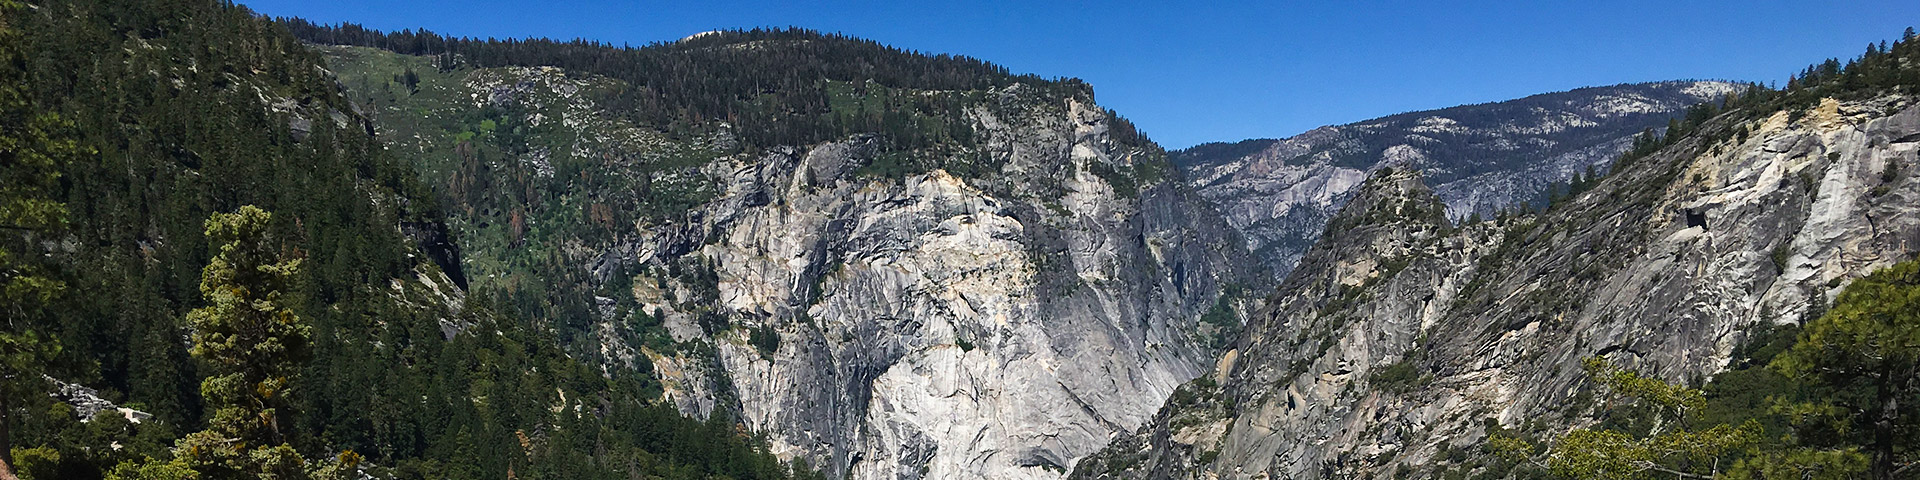 Panoramic views of the Mist Trail hike in Yosemite National Park